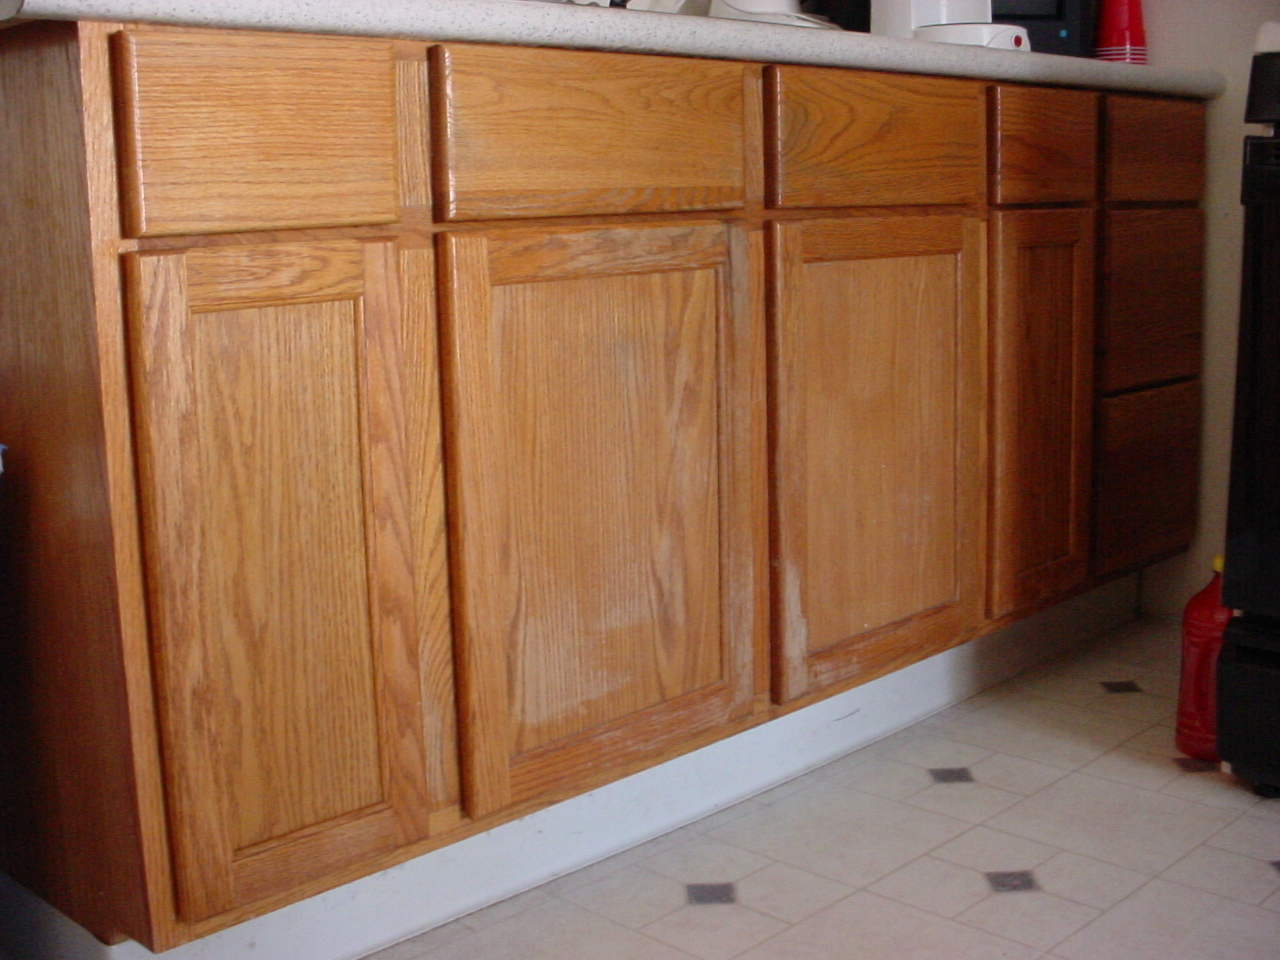 Surprising Re Varnish Kitchen Cabinets Kitchen Cabinets Re Staining Download Free Architecture Designs Salvmadebymaigaardcom